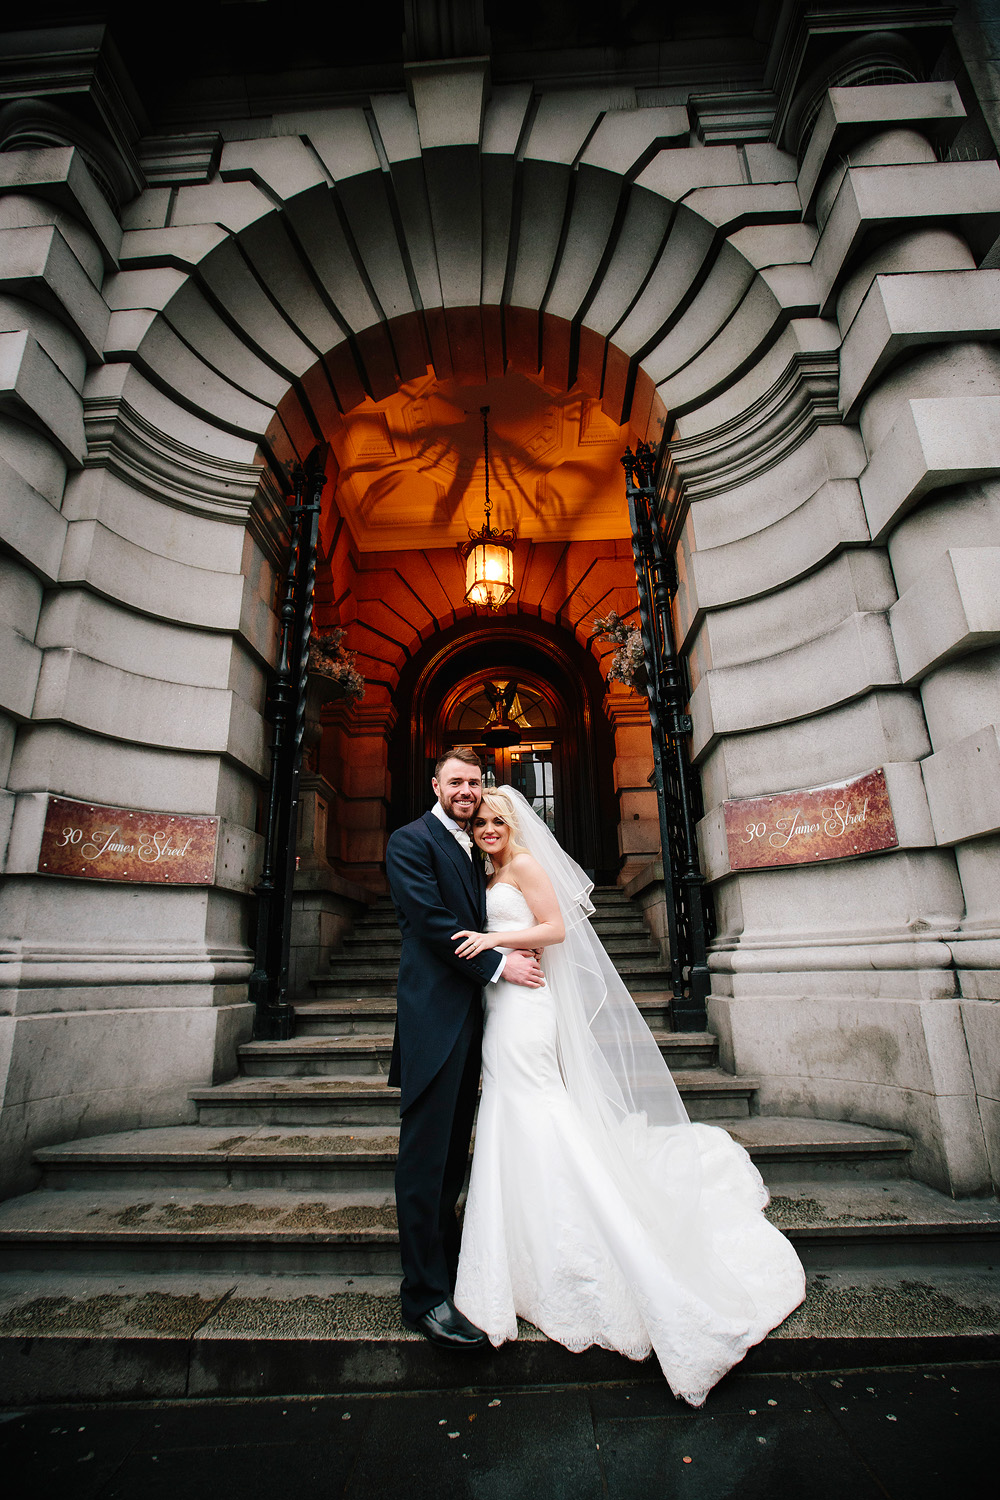 The bride and groom outside the entrance to 30 James Street.